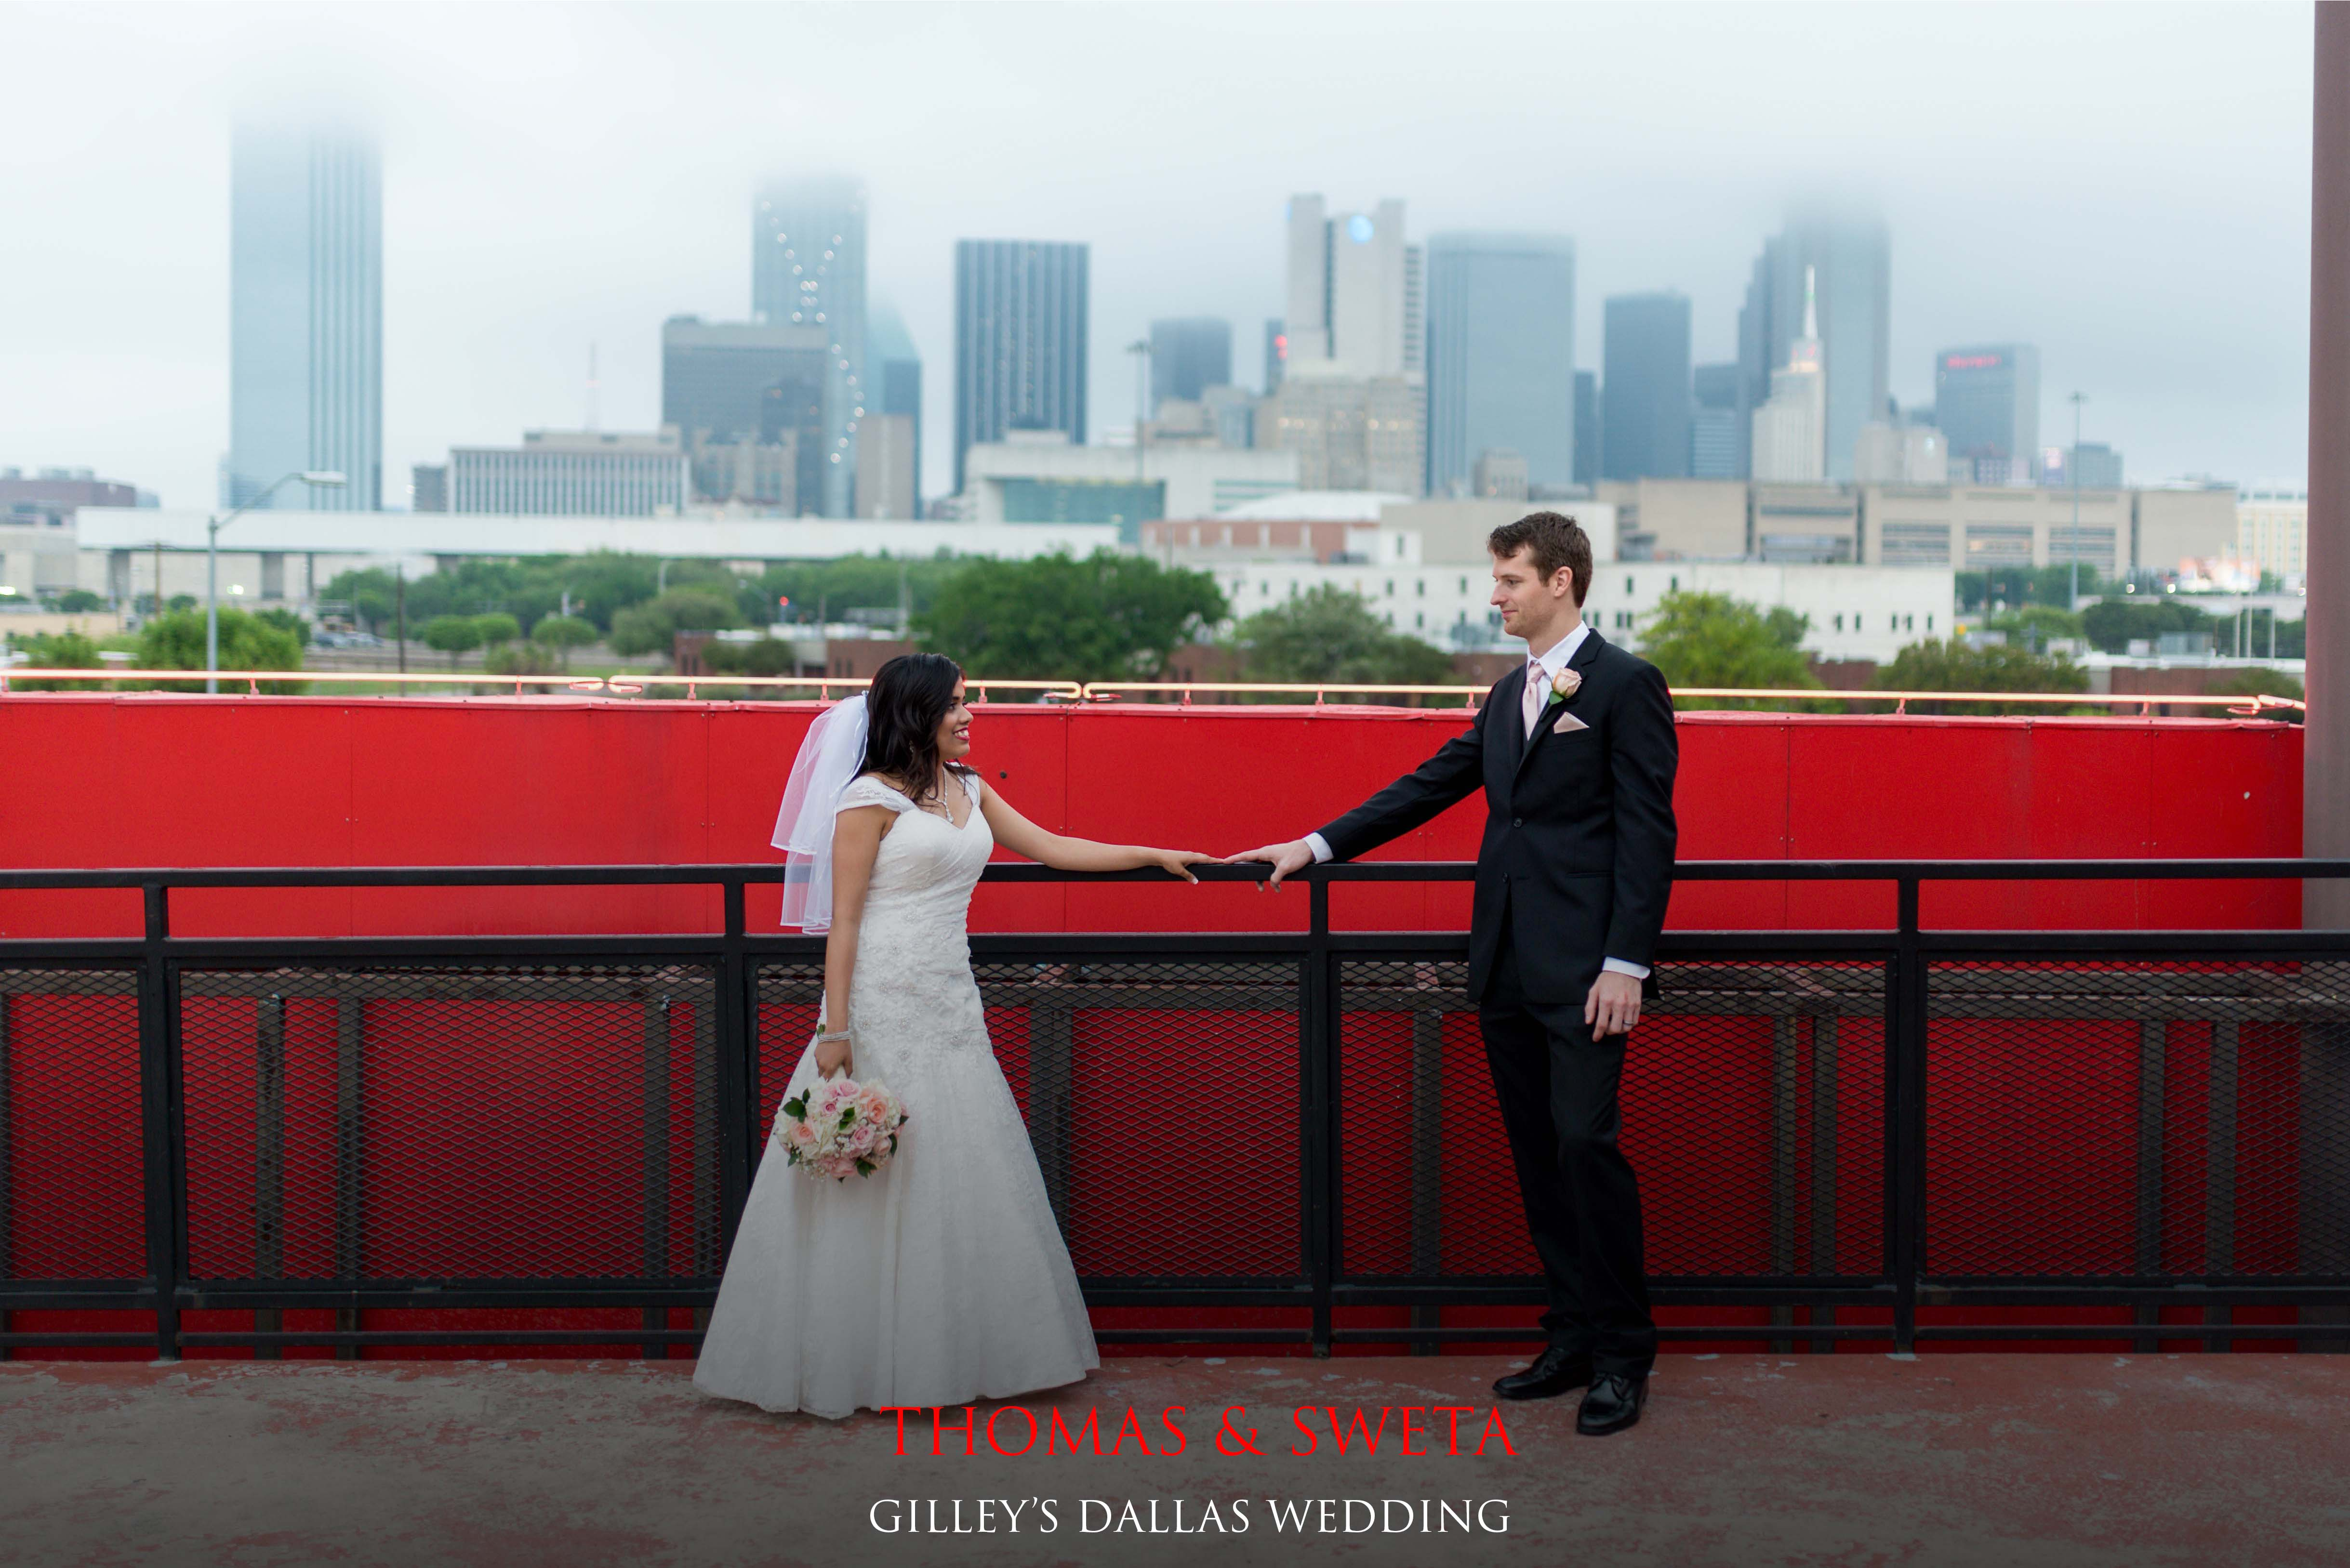 Gilley's Dallas Wedding